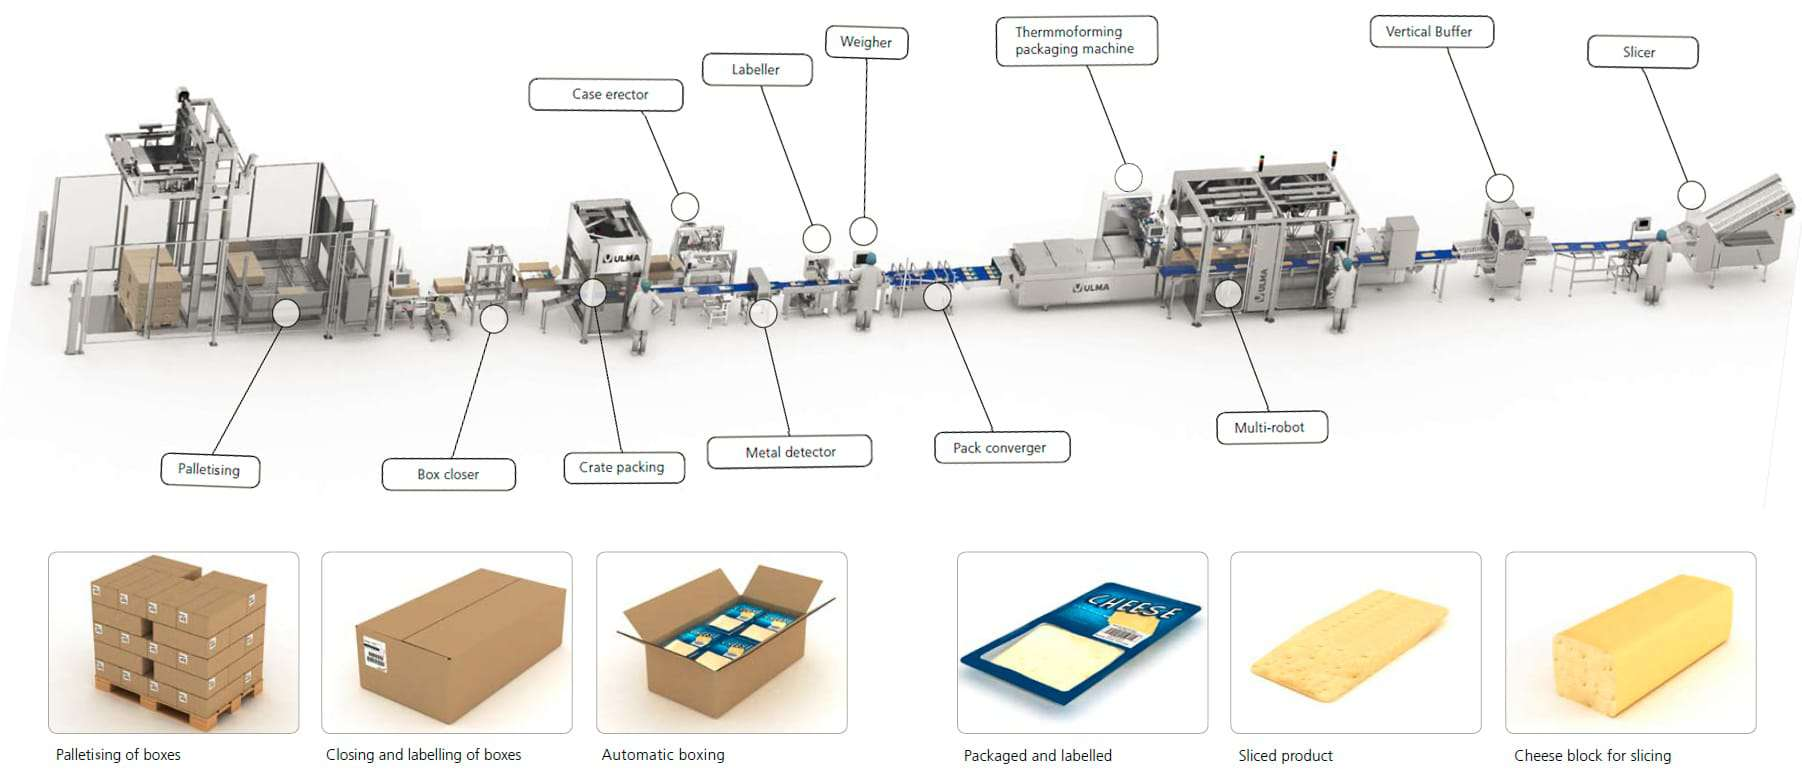 dairy packing, cheese packaging, sealing, wrapping, packaging